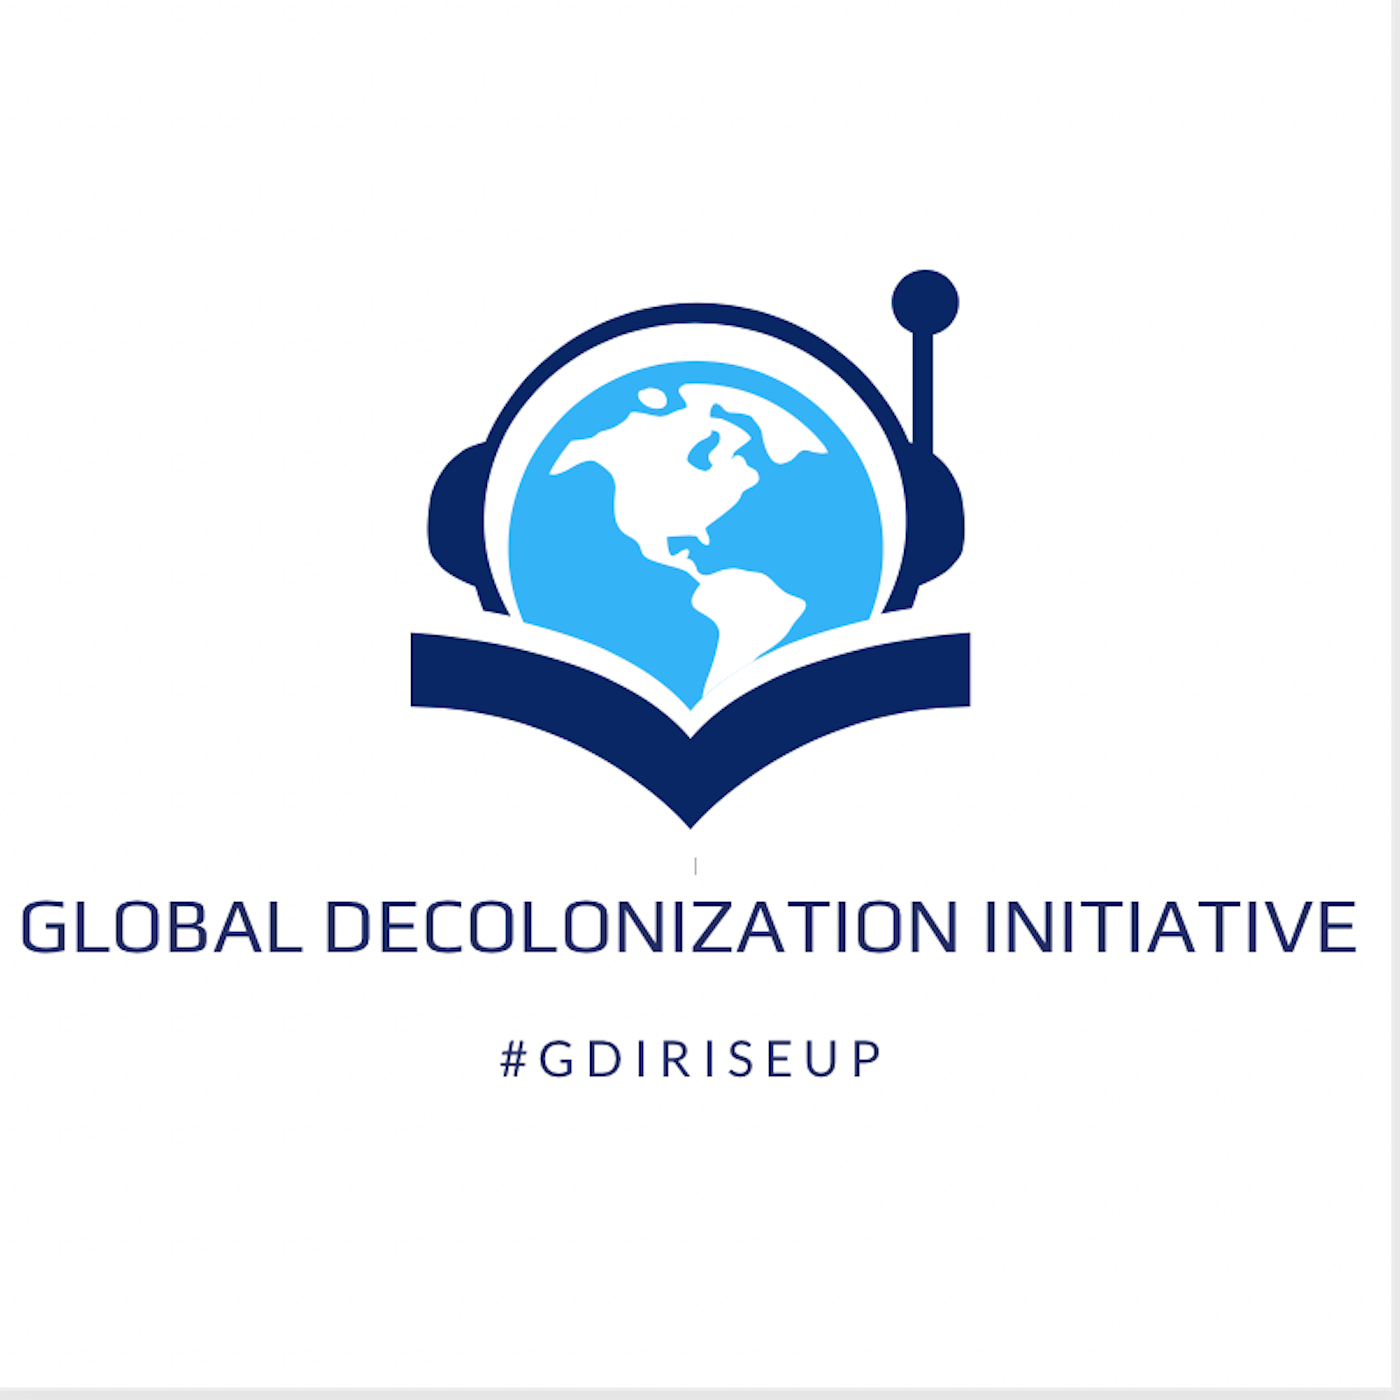 Show artwork for Global Decolonization Initiative